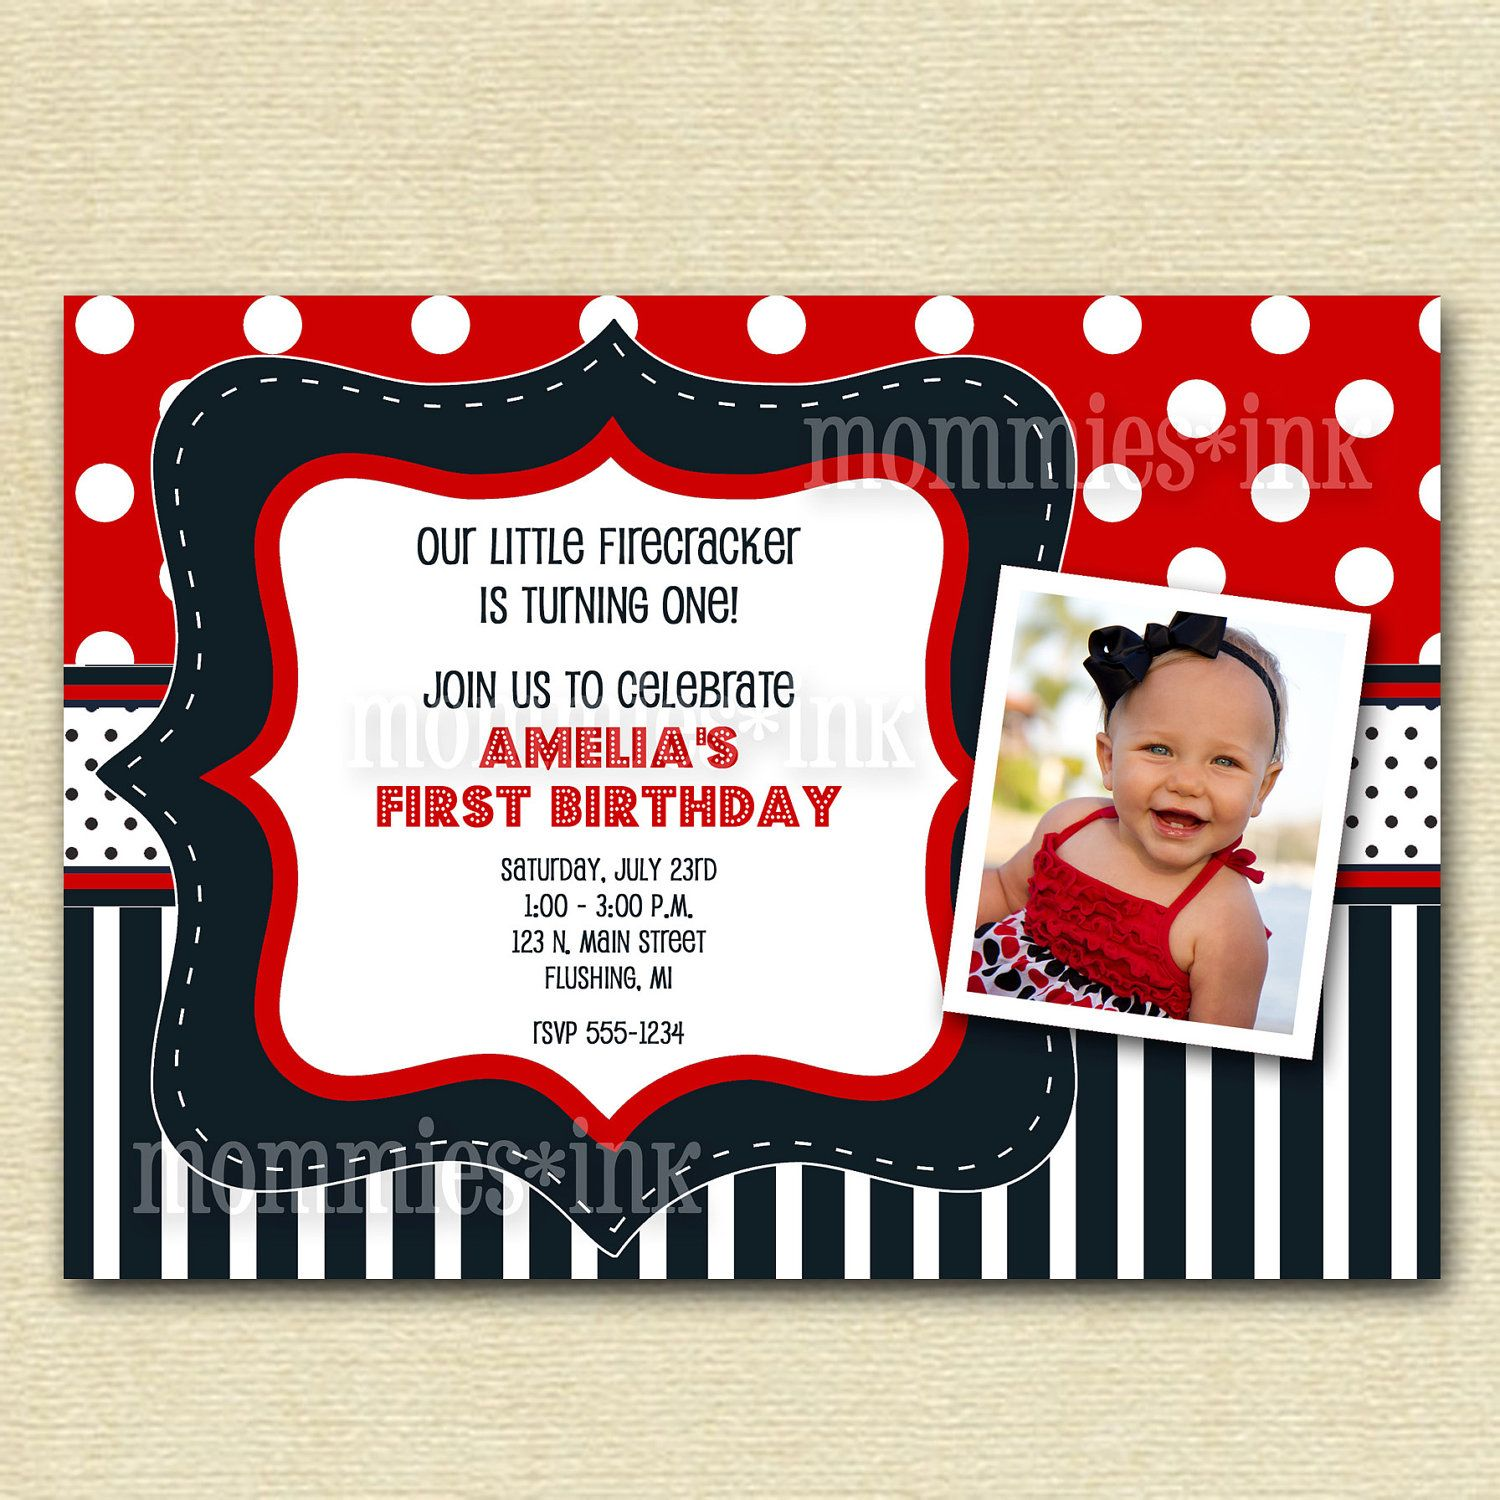 Red White and Blue Baby Shower or Birthday Invitation - PRINTABLE ...